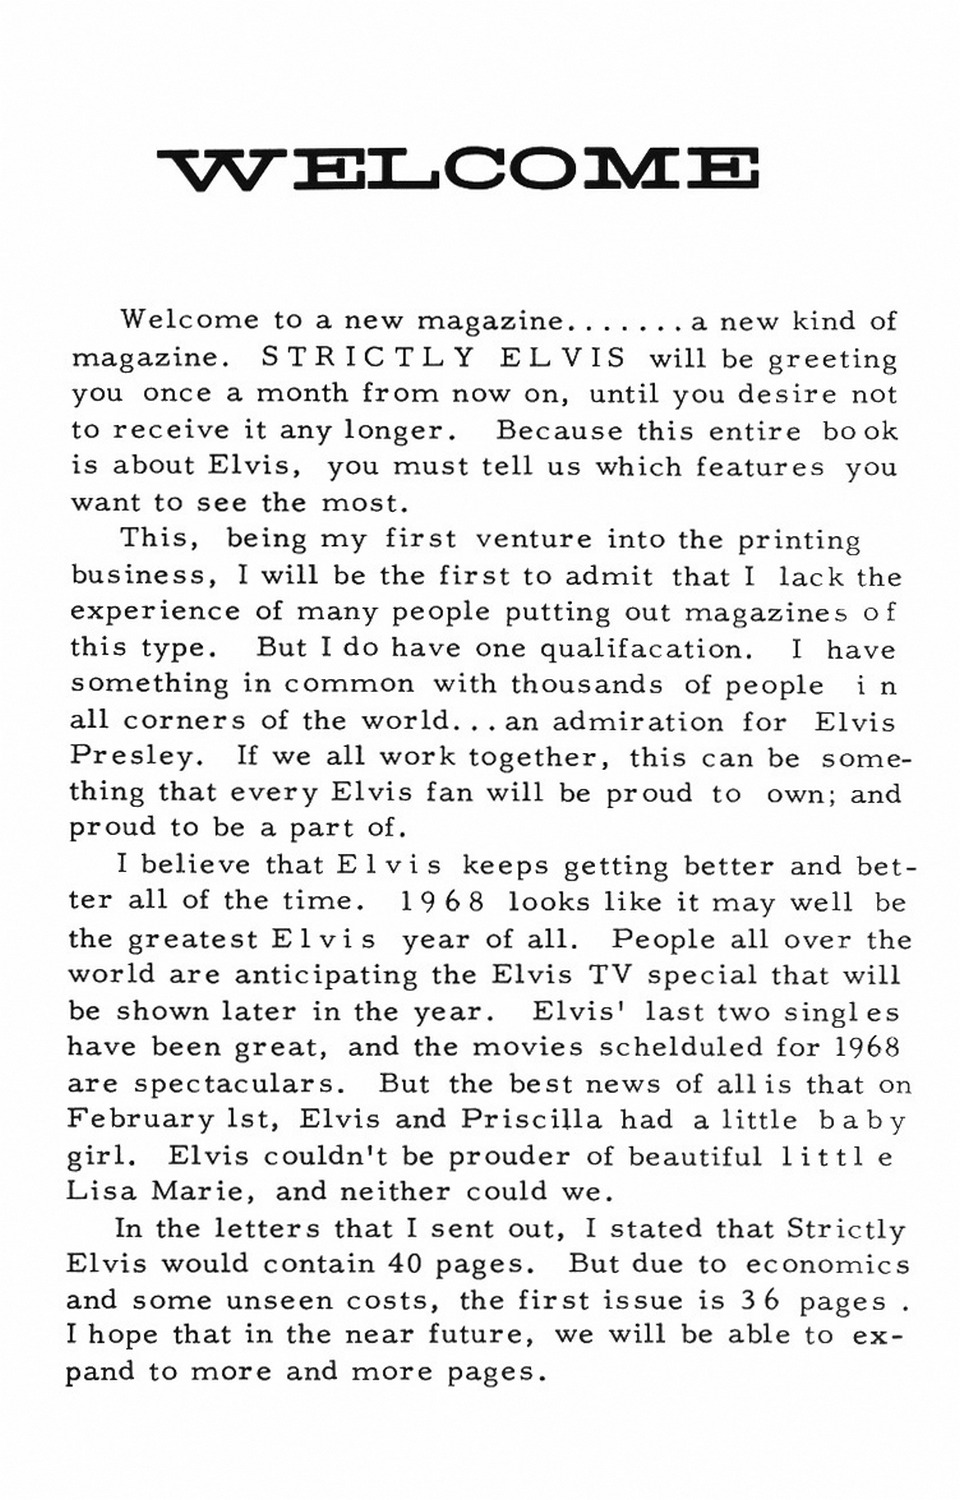 Strictly Elvis No. 1 May 1968 02